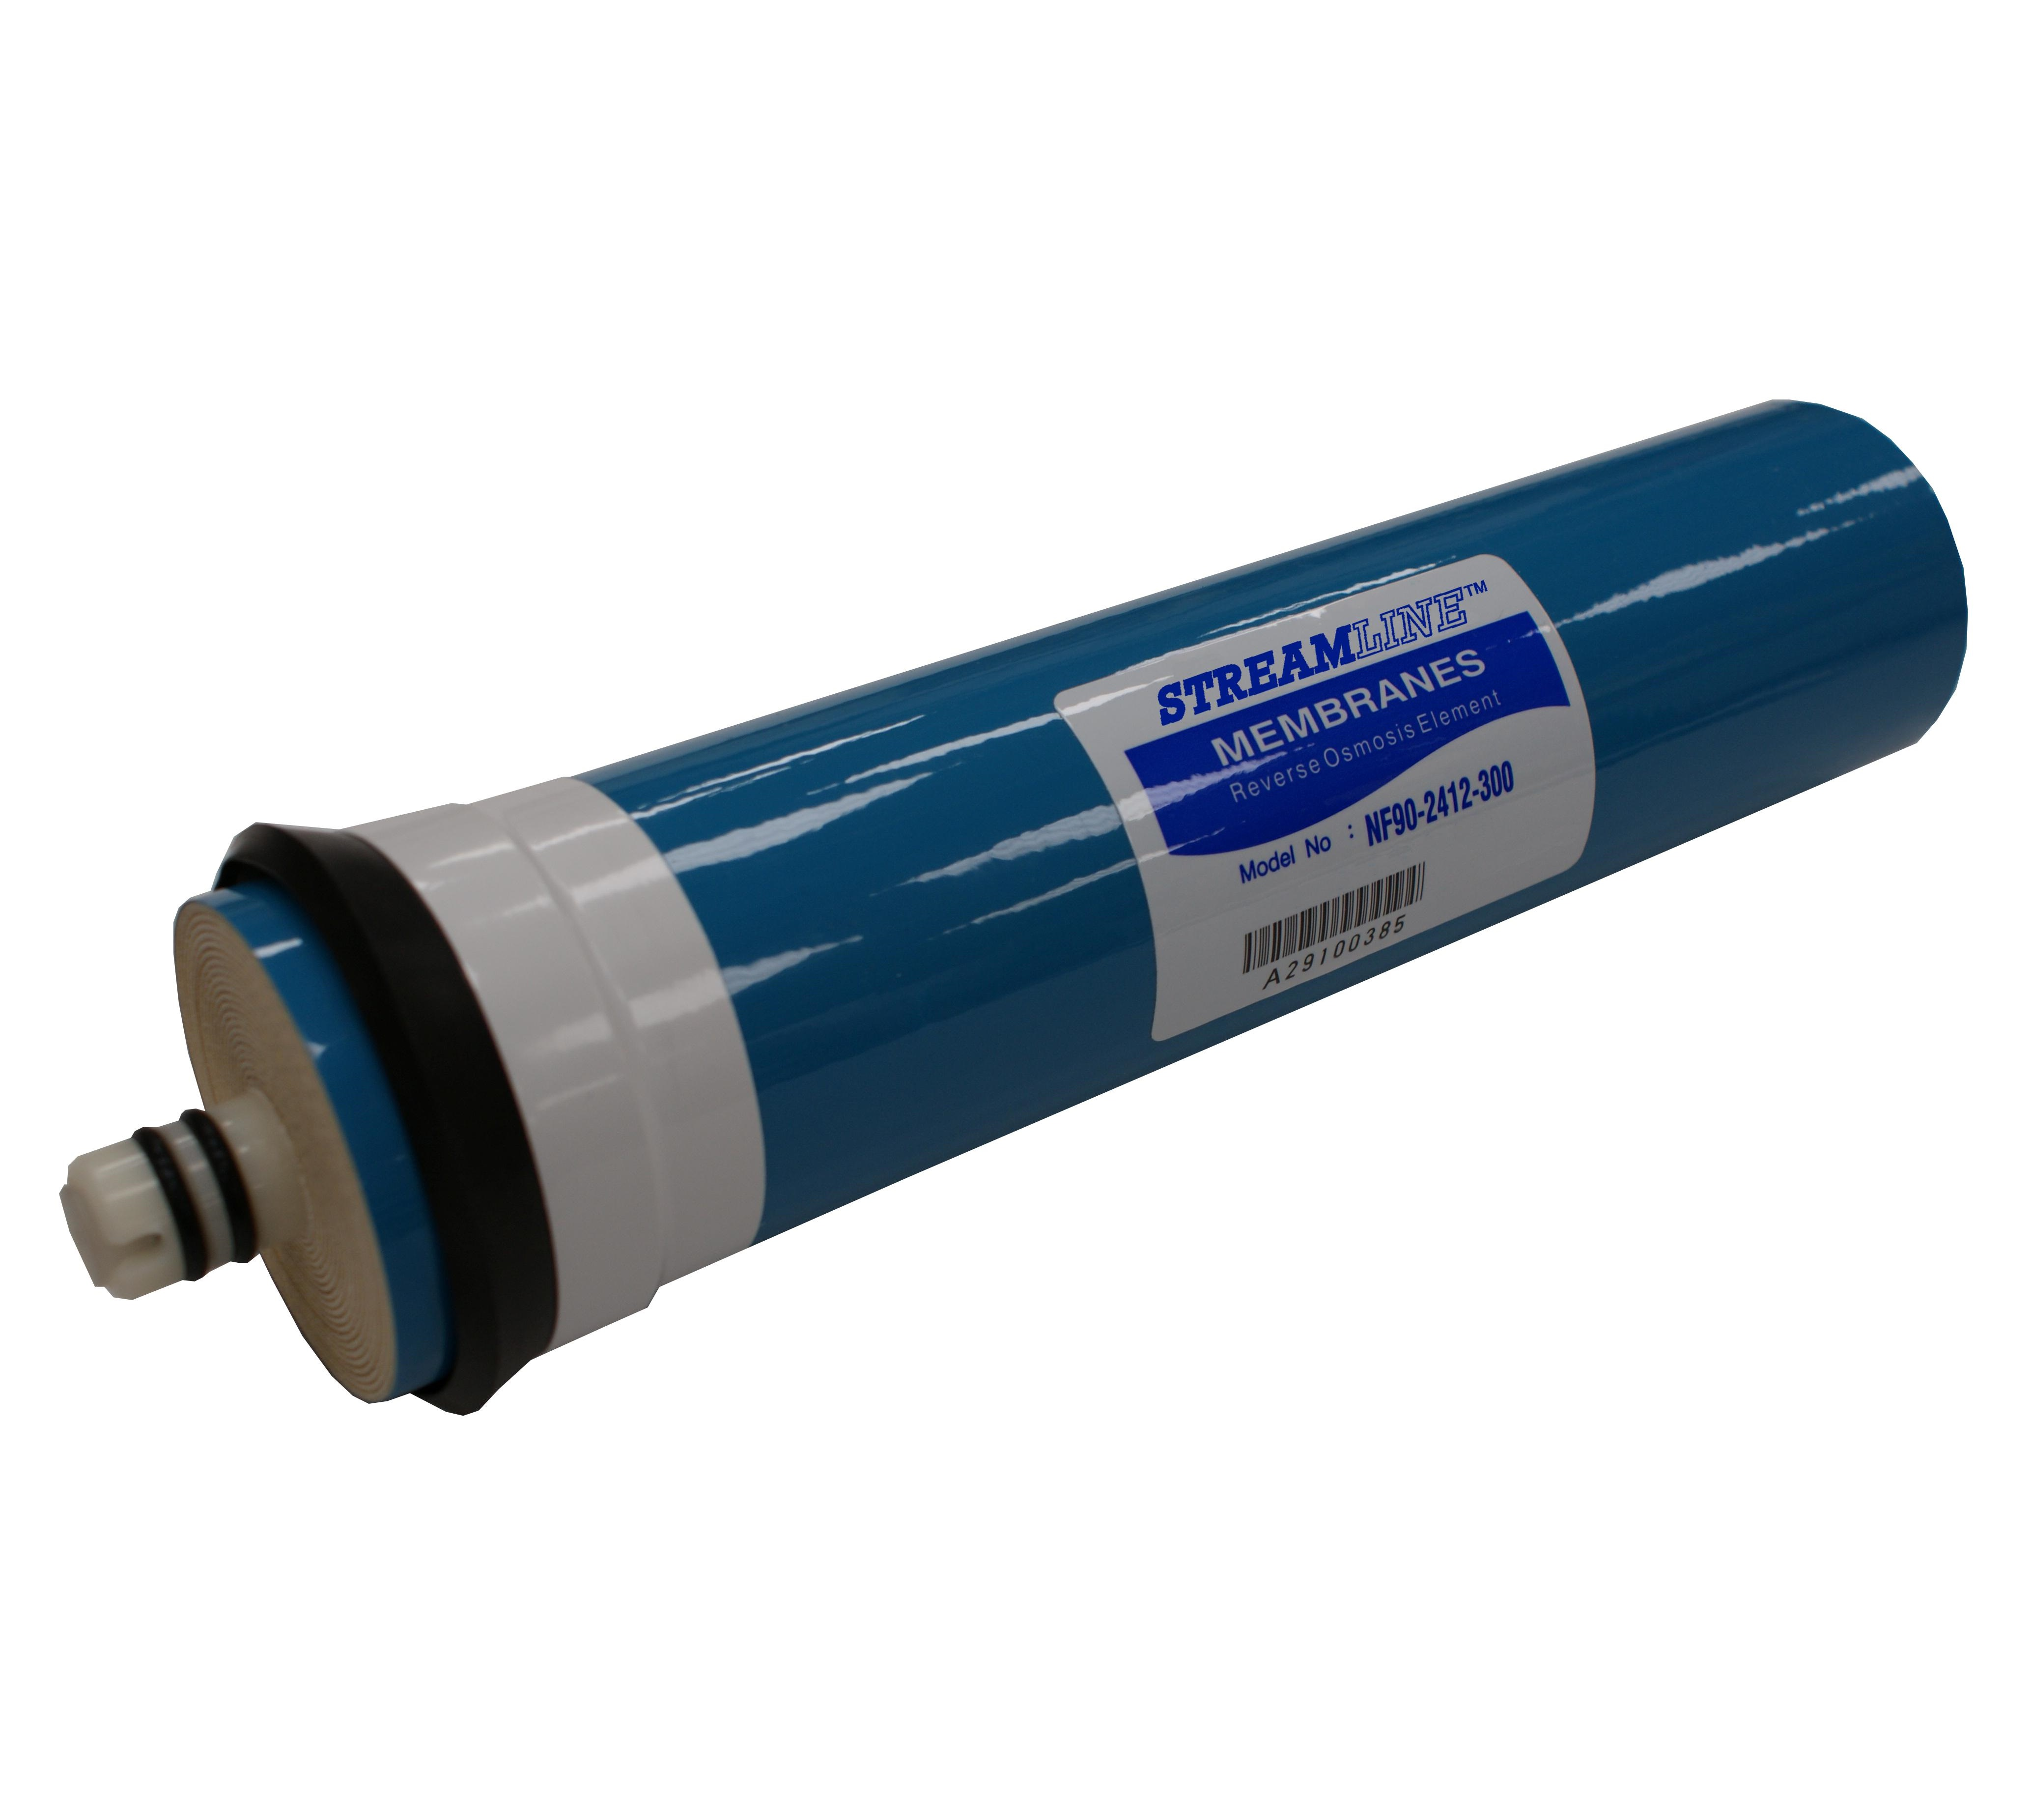 RO Membrane for Filterplus 300 & 600 systems